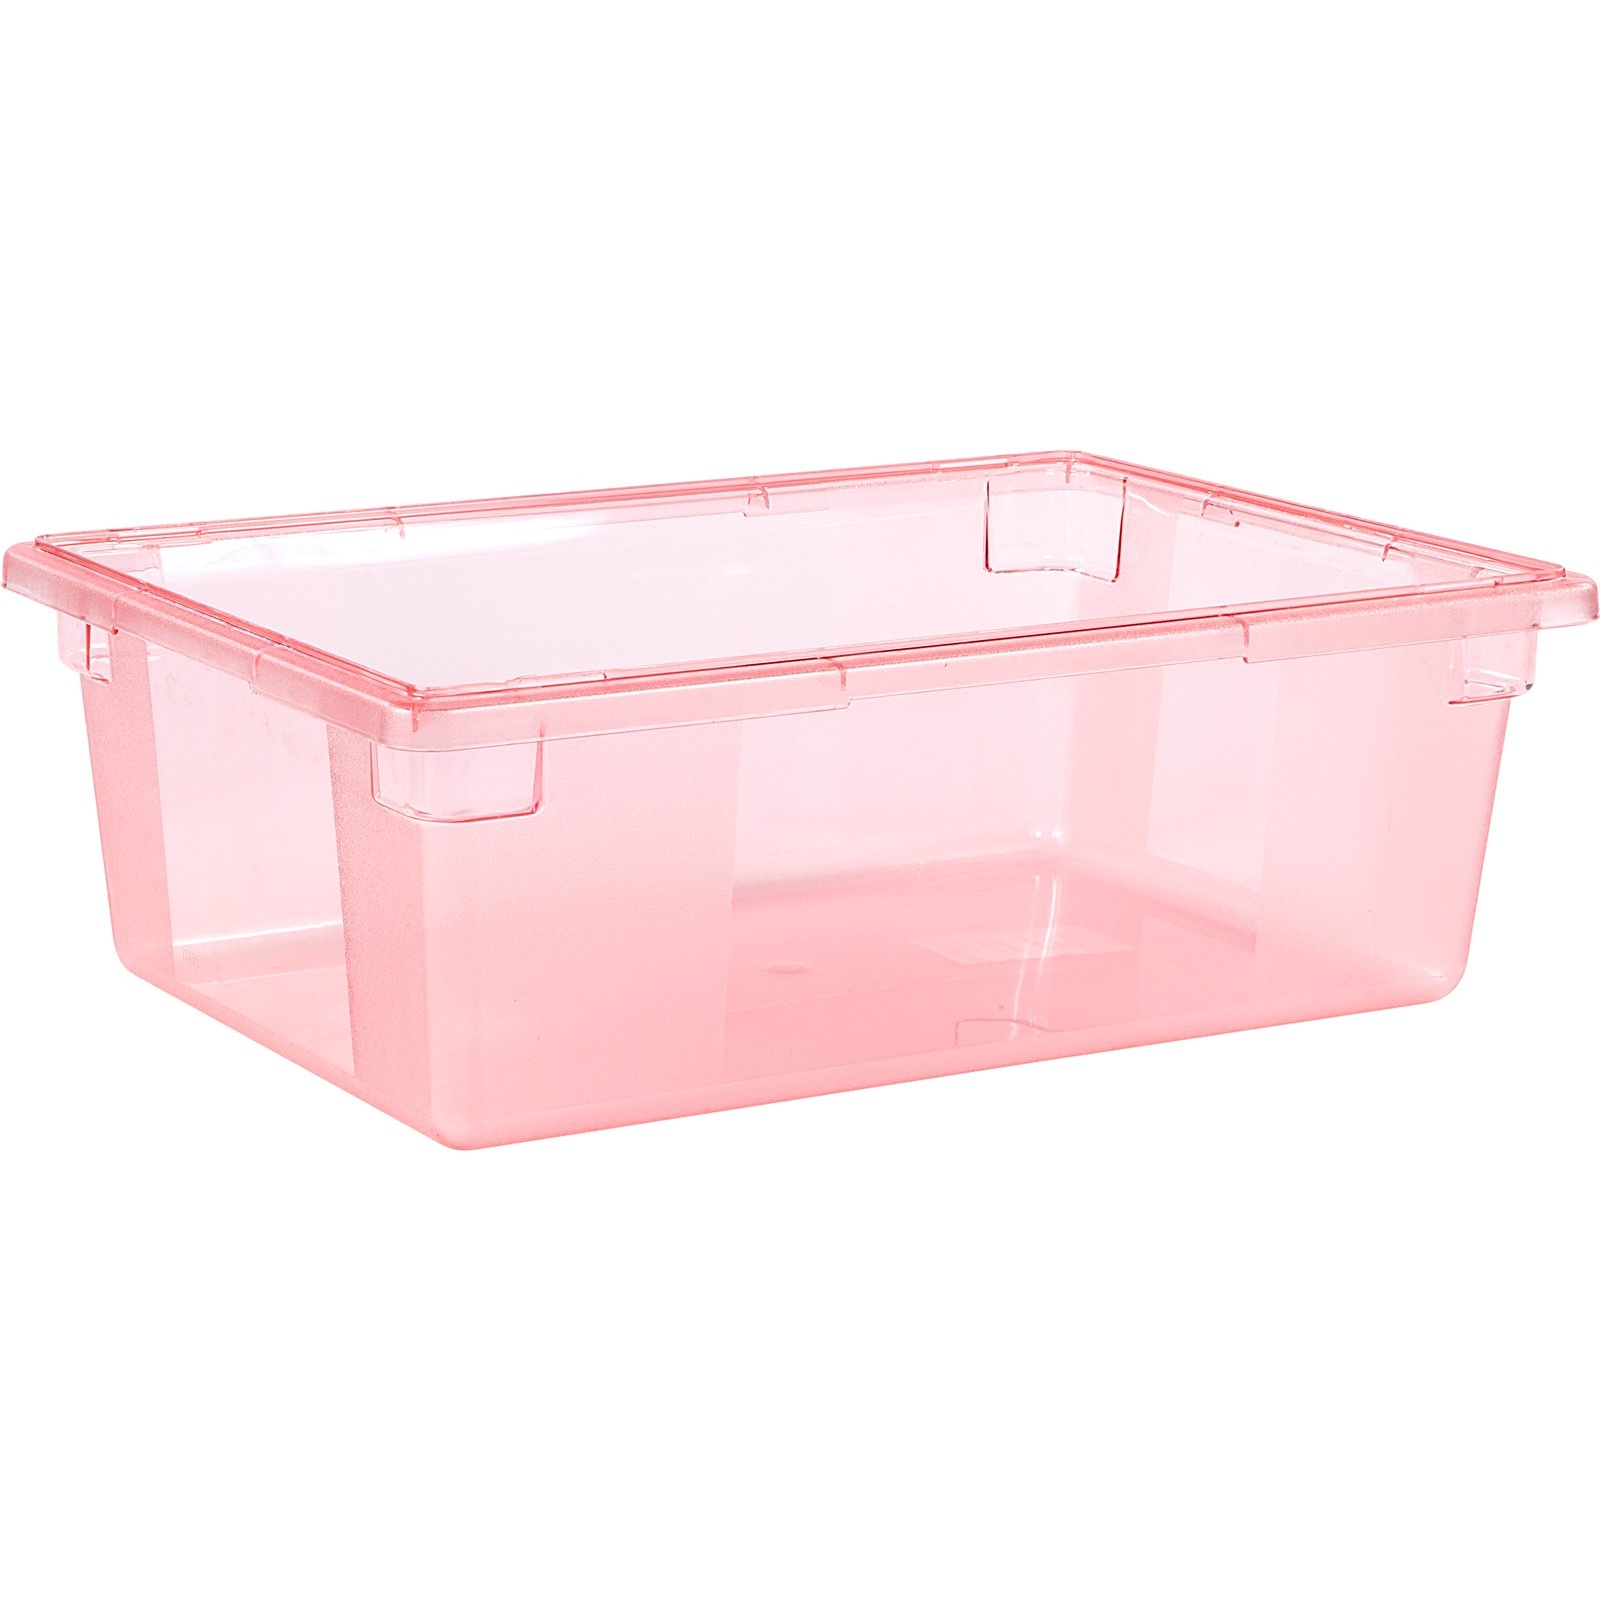 10622C05 - StorPlus™ Color-Coded Food Box Storage Container 12.5 Gallon 26  x 18  x 9  - Red  sc 1 st  Carlisle FoodService Products & 10622C05 - StorPlus™ Color-Coded Food Box Storage Container 12.5 ...